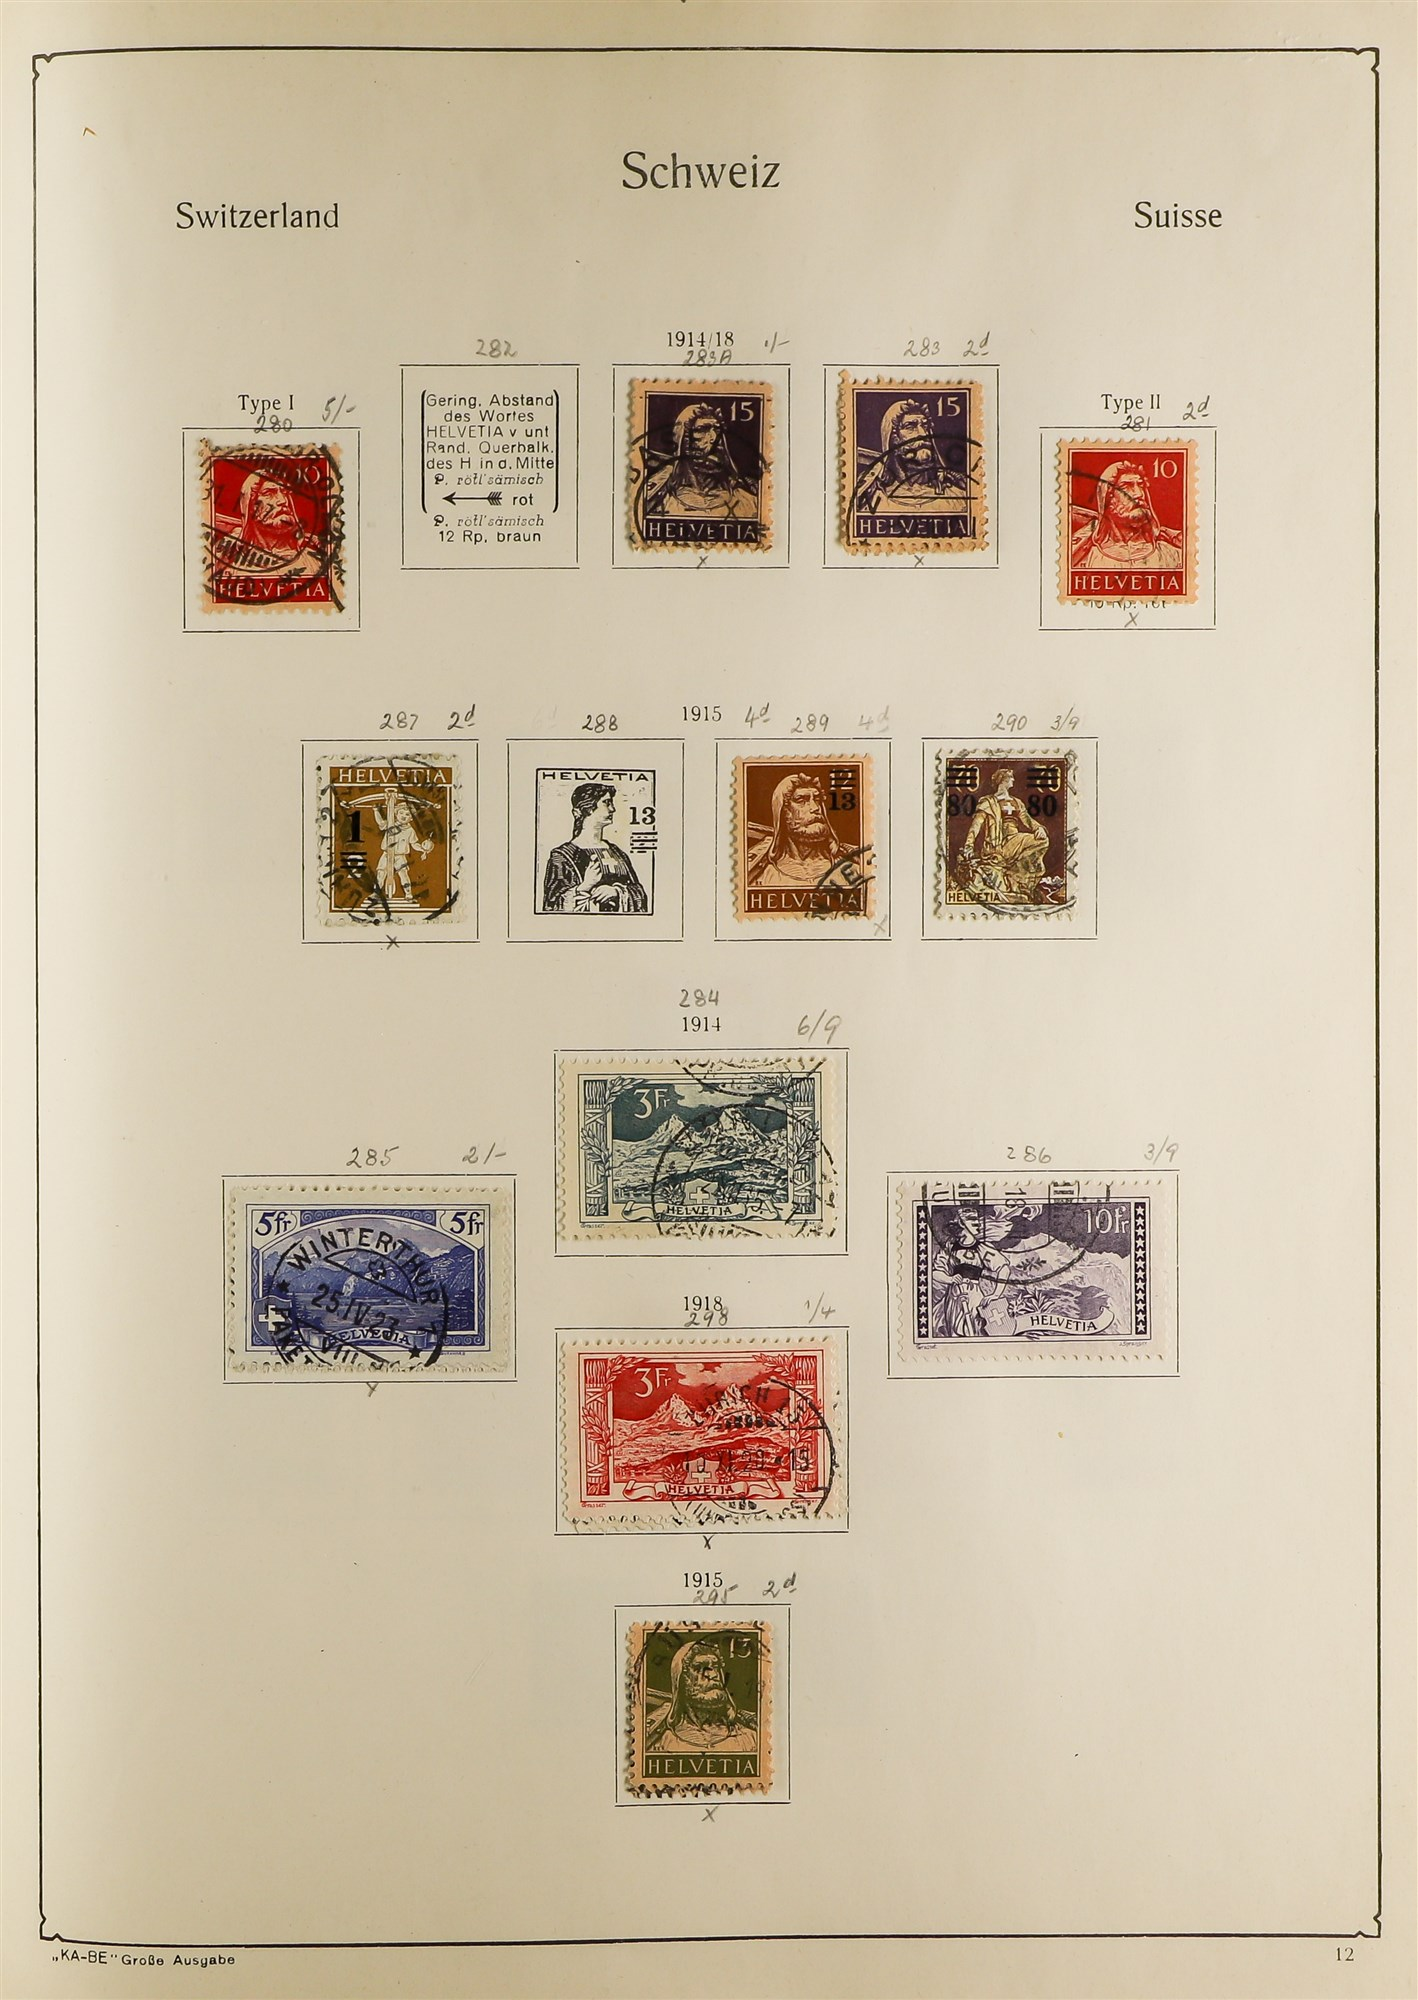 COLLECTIONS & ACCUMULATIONS FRANCE, GERMANY, SWITZERLAND IN TWO LARGE KA-BE ALBUMS with useful - Image 6 of 12